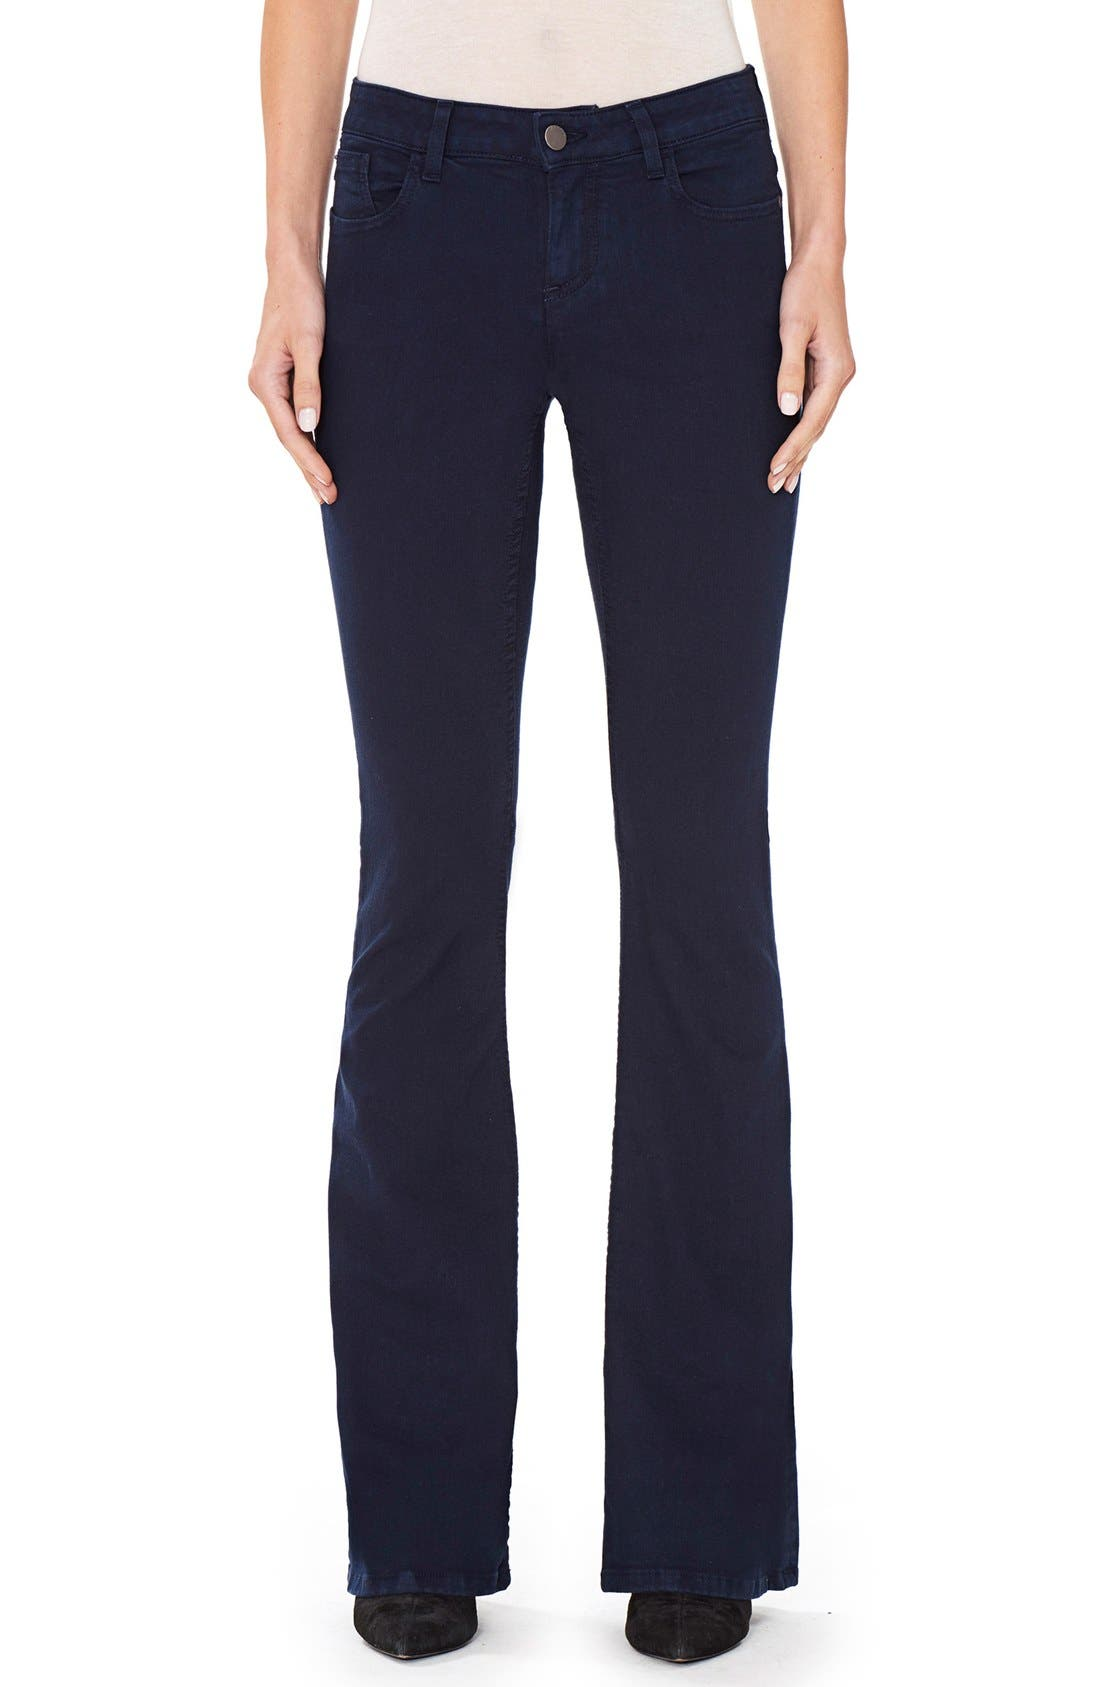 ALICE + OLIVIA Stacey Flare Leg Jeans